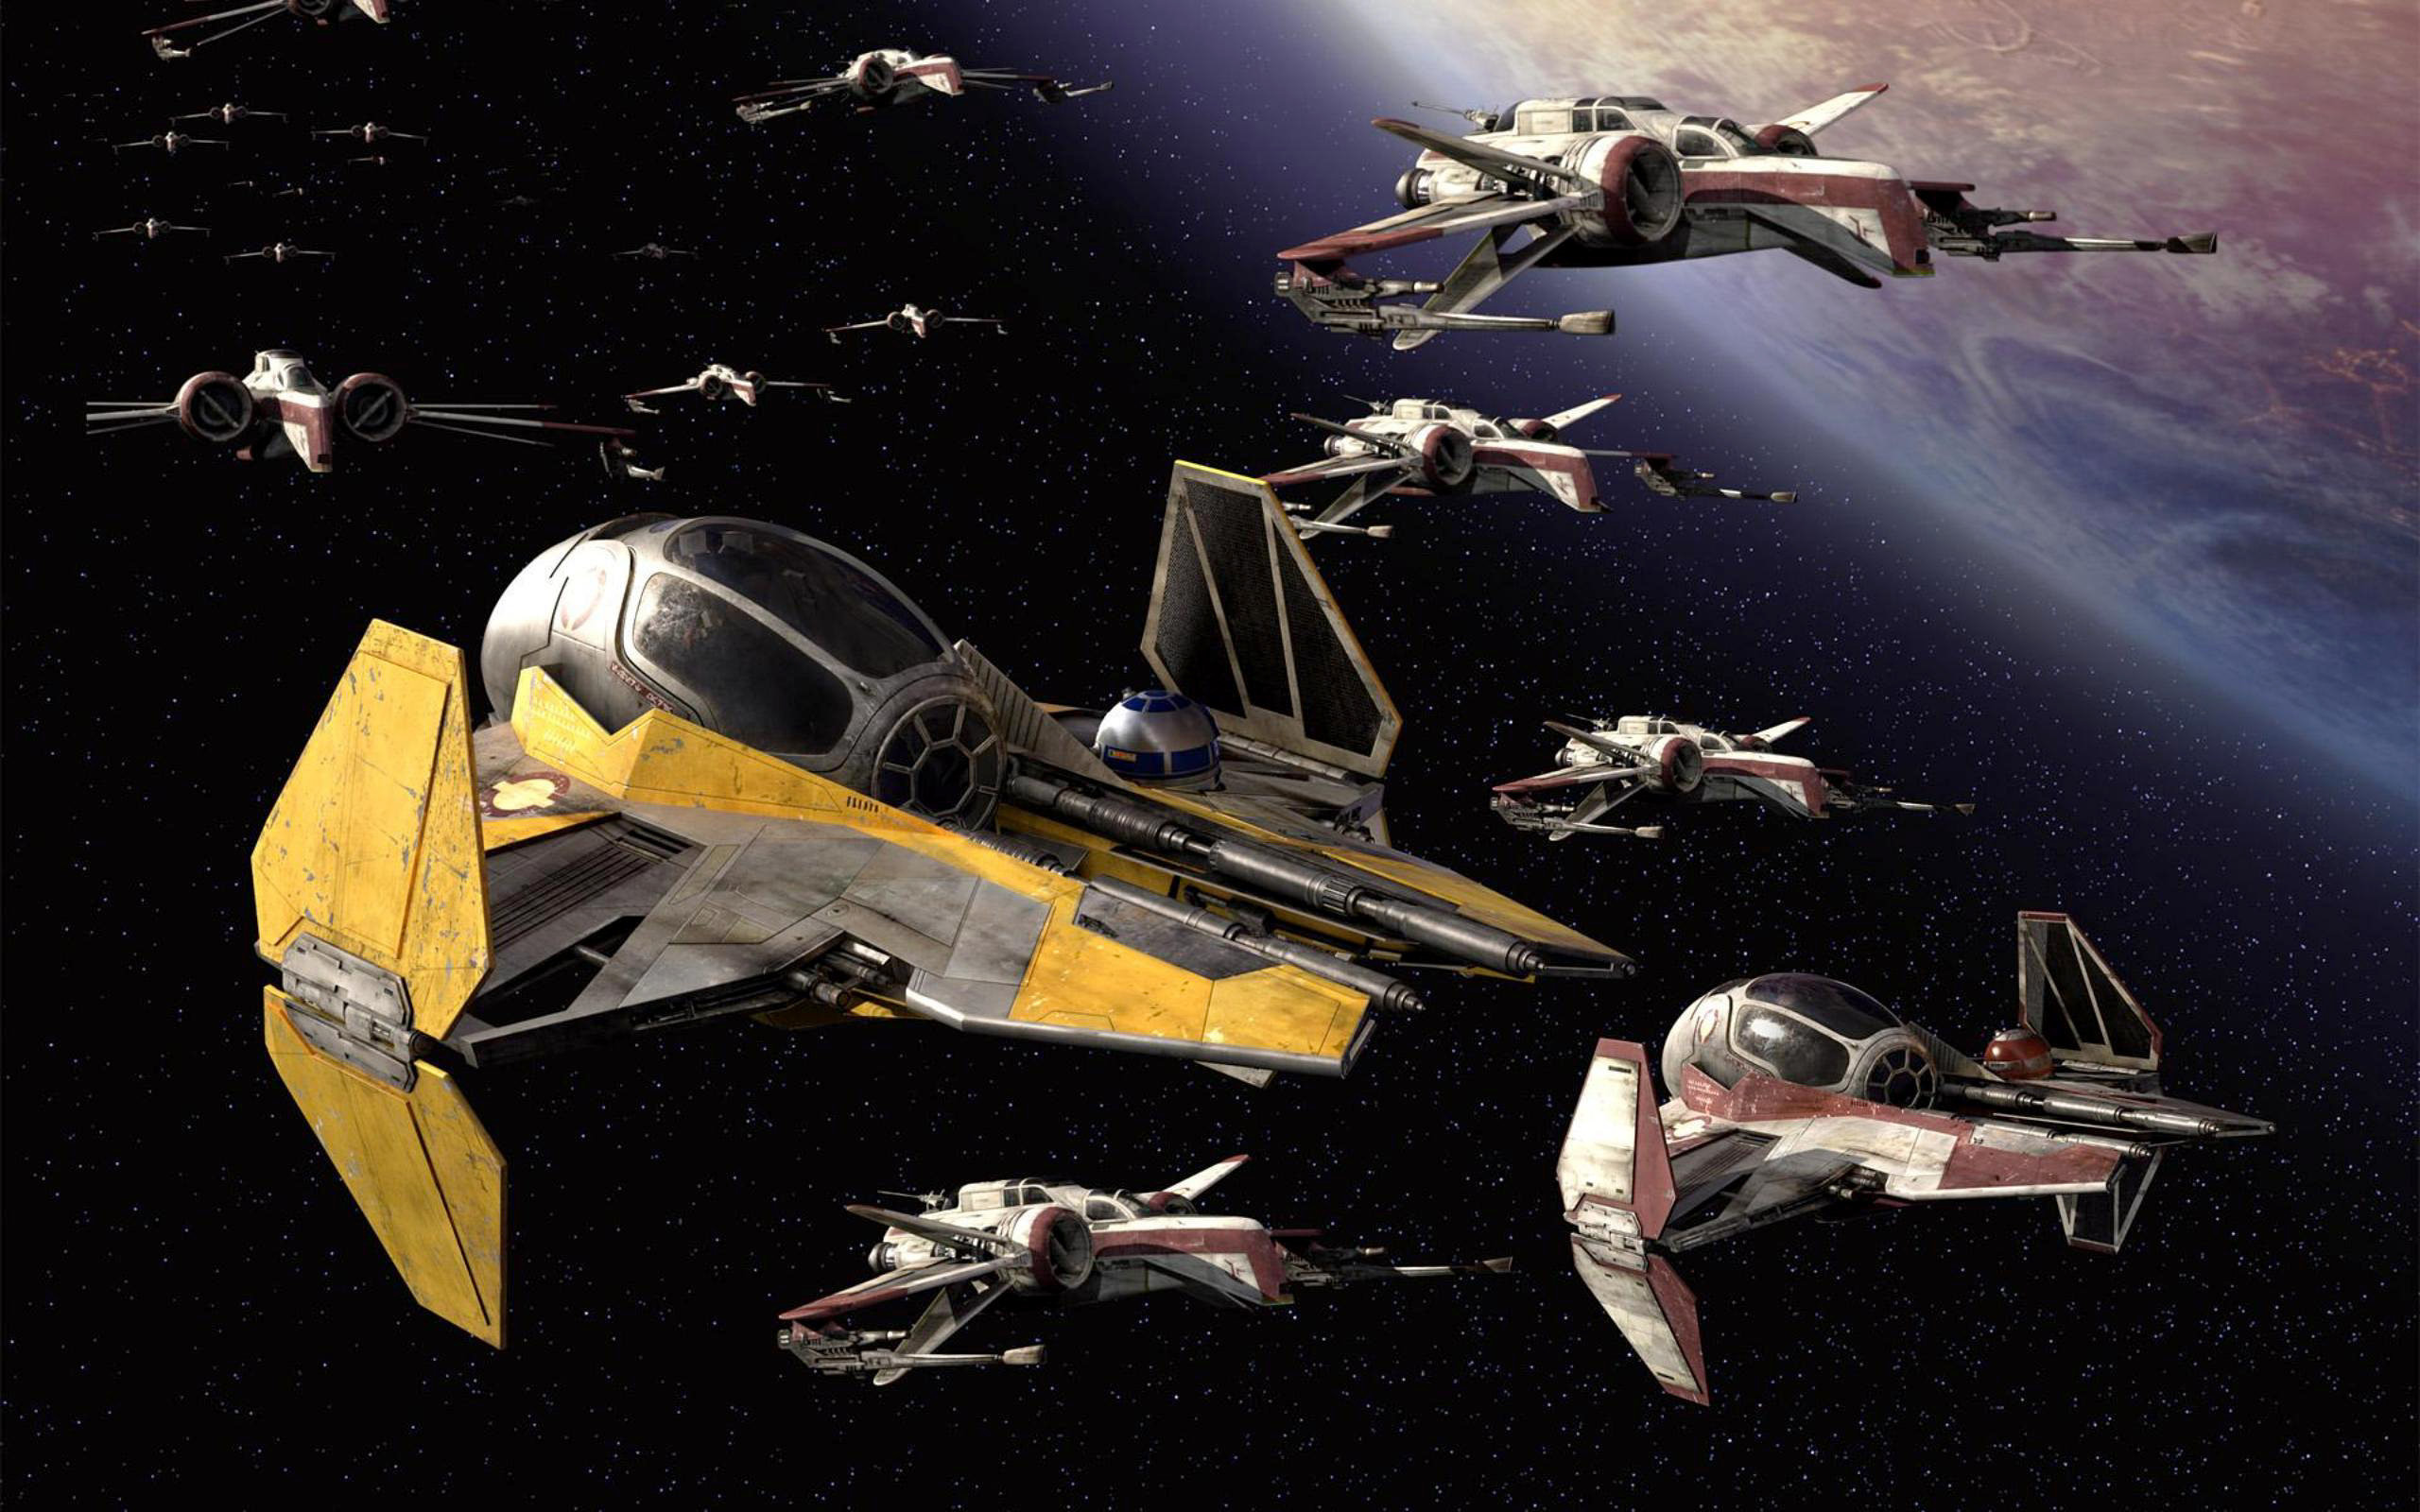 Movie Star Wars CGI Ship X-wing Planet Stars Space Video Game Wallpaper